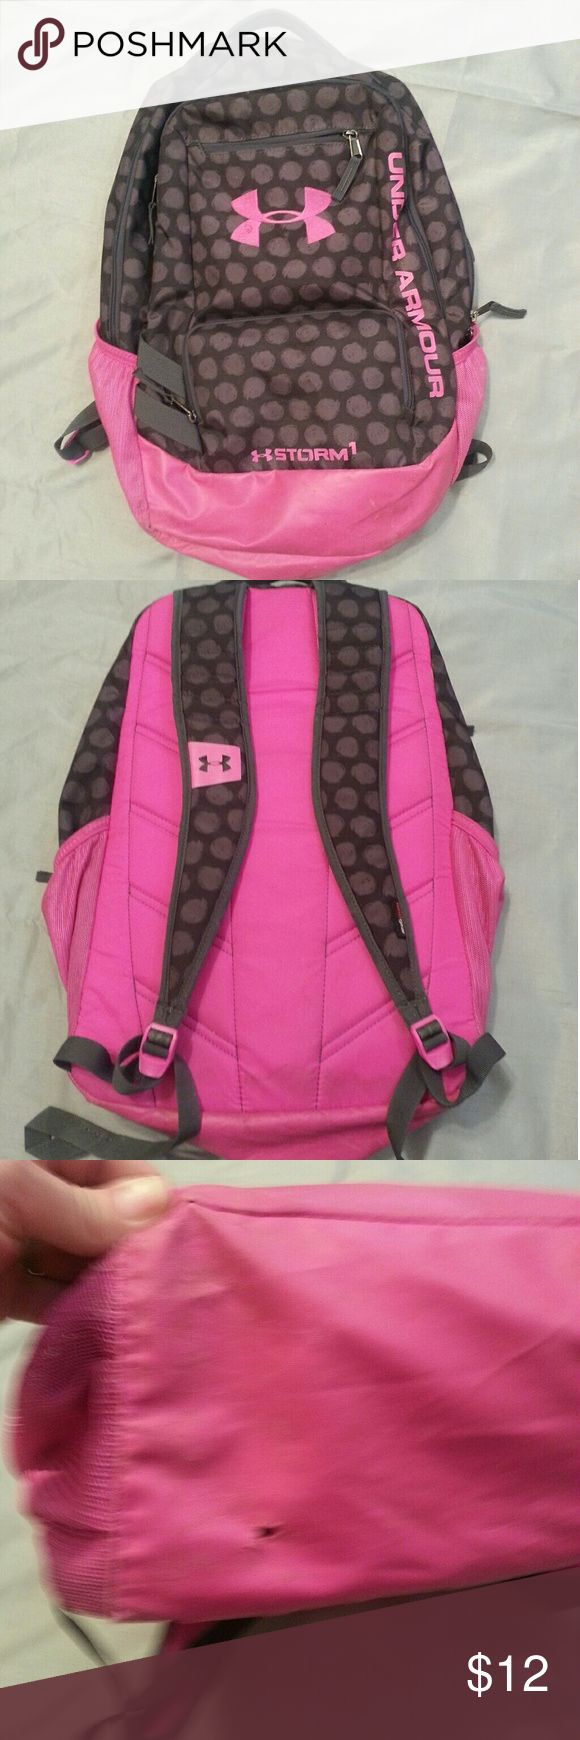 Under Armour backpack GUC pink and black Under Armour back. Some wear on the bottom as shown but the rest of the backpack is in excellent condition. Under Armour Bags Backpacks